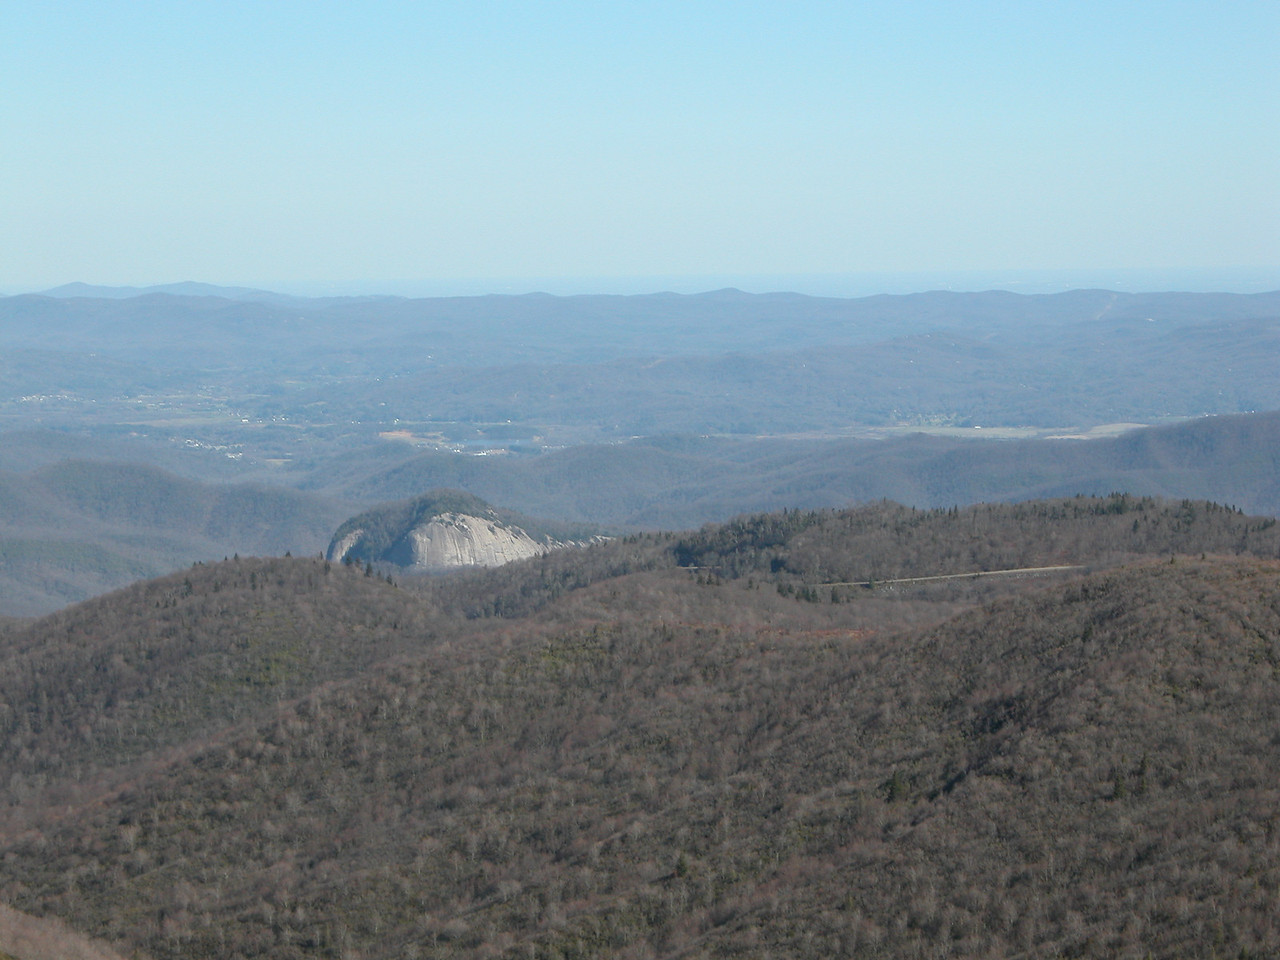 View of Looking Glass Rock and the Parkway from the summit of Tennent Mtn.